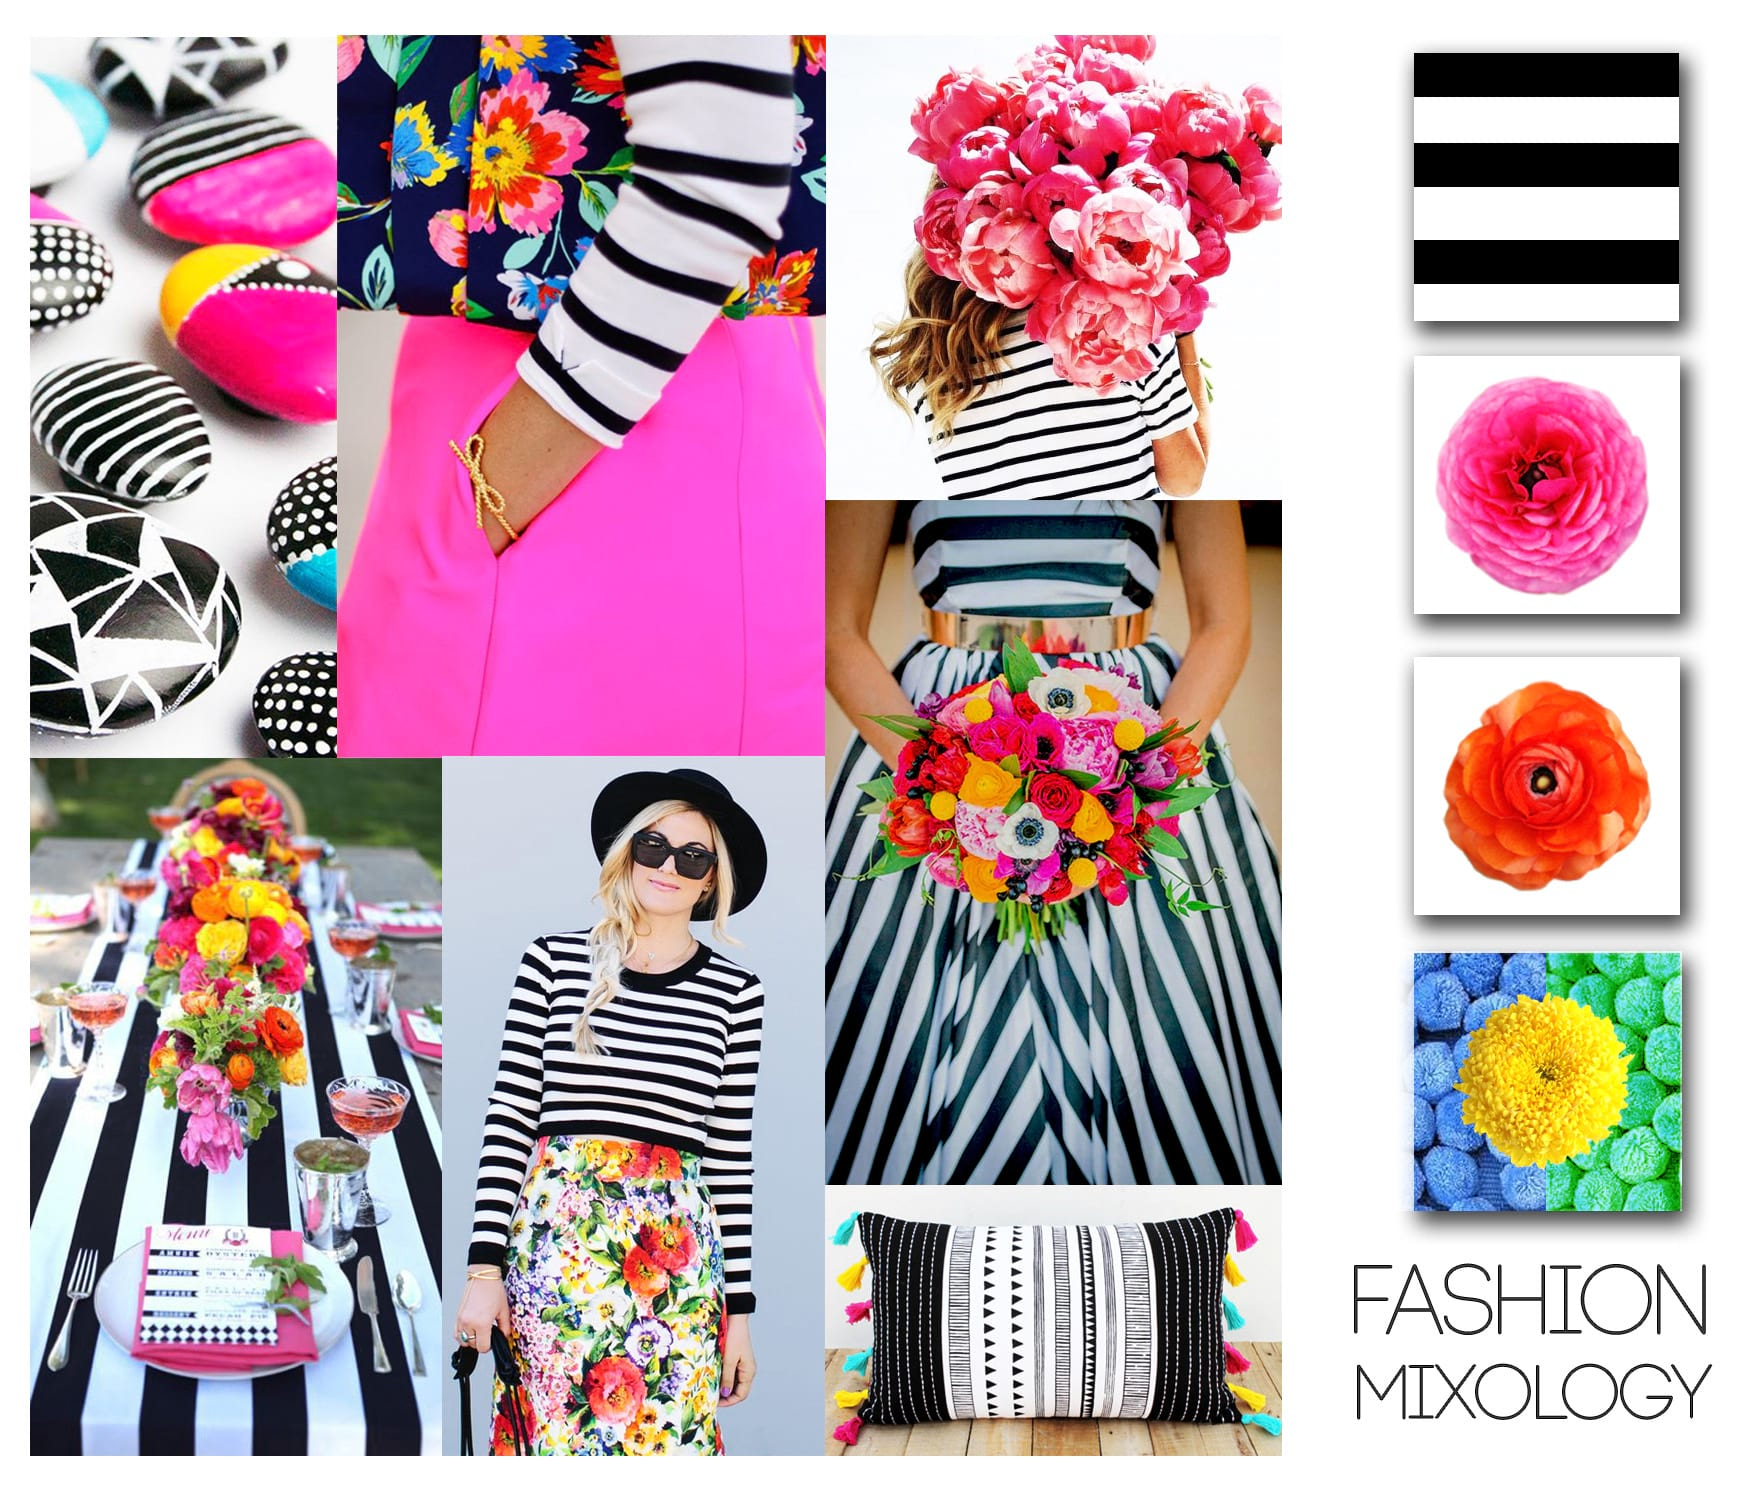 Decor Meets Fashion - Mixing Prints: Desaturated Stripes & Bright Florals 10